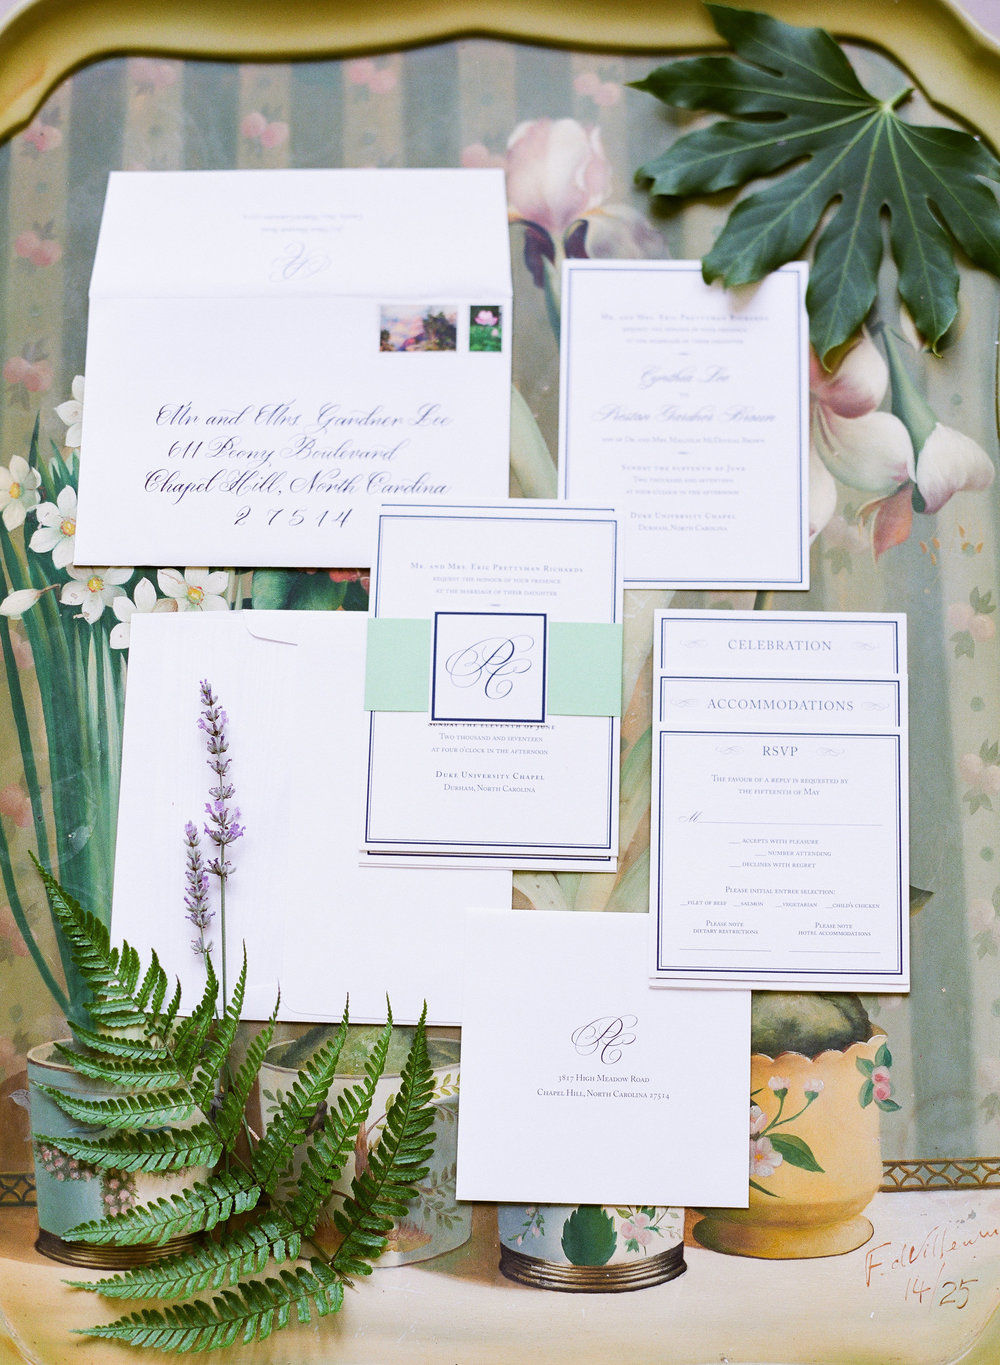 692f6-chapelhillnctraditionalsouthernweddinginvitationschapelhillnctraditionalsouthernweddinginvitations.jpg